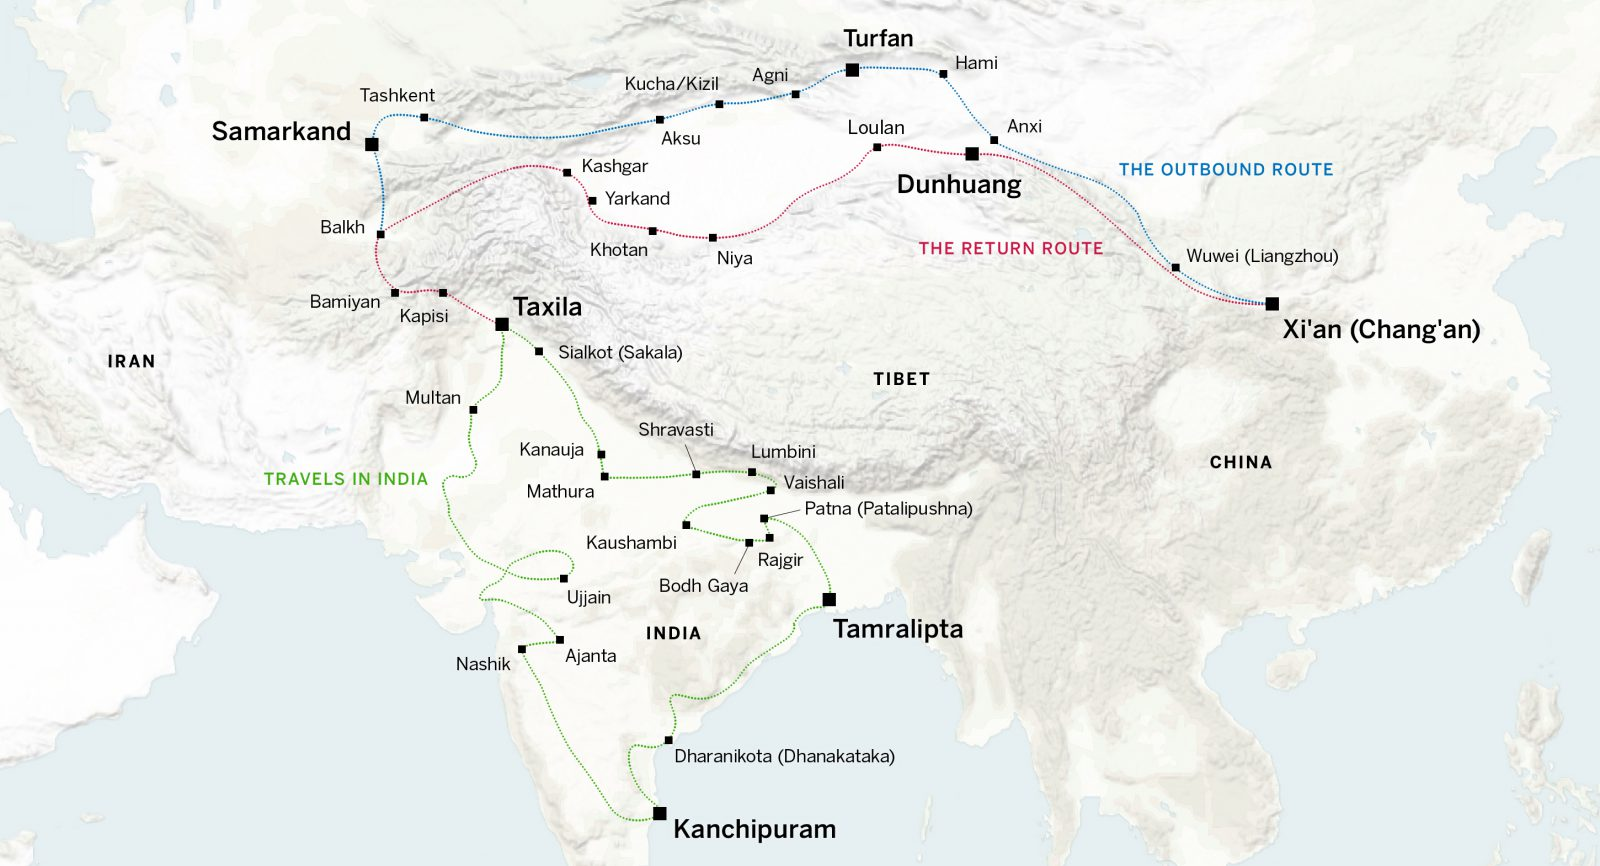 Xuanzang traveled from Xi'an to Samarkand to Souther India and back